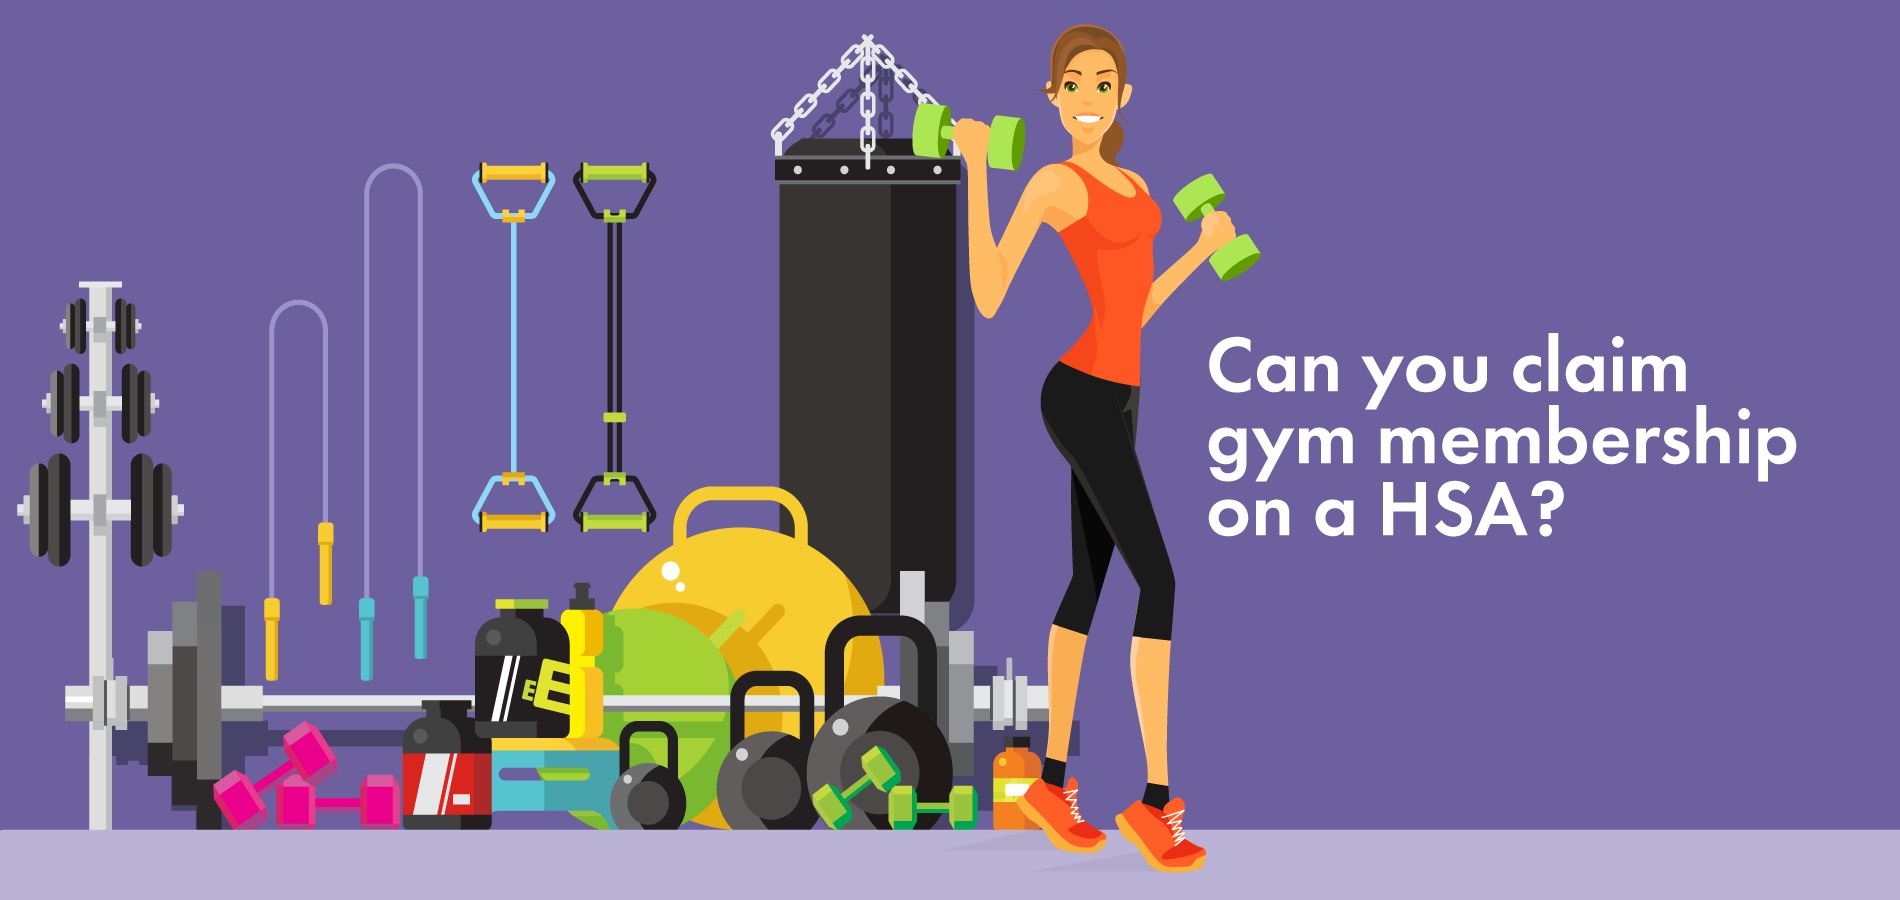 Can you claim gym membership on an HSA